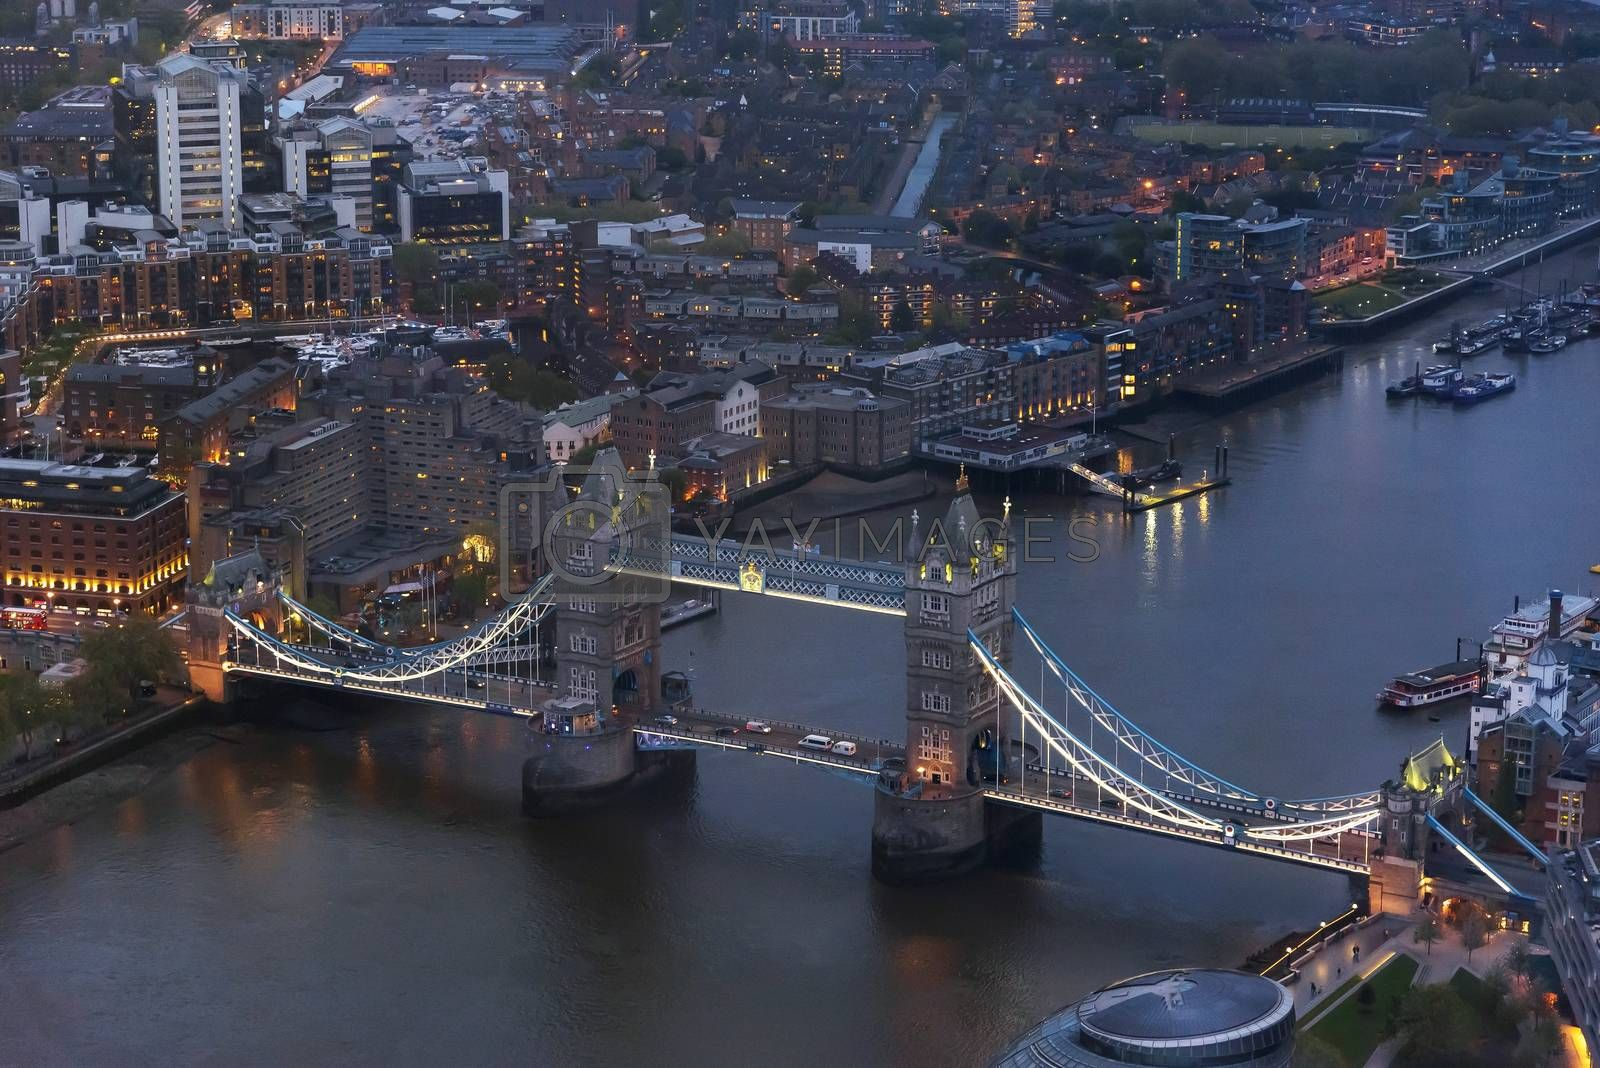 Aerial view of Tower Bridge in London at an overcast day at dusk